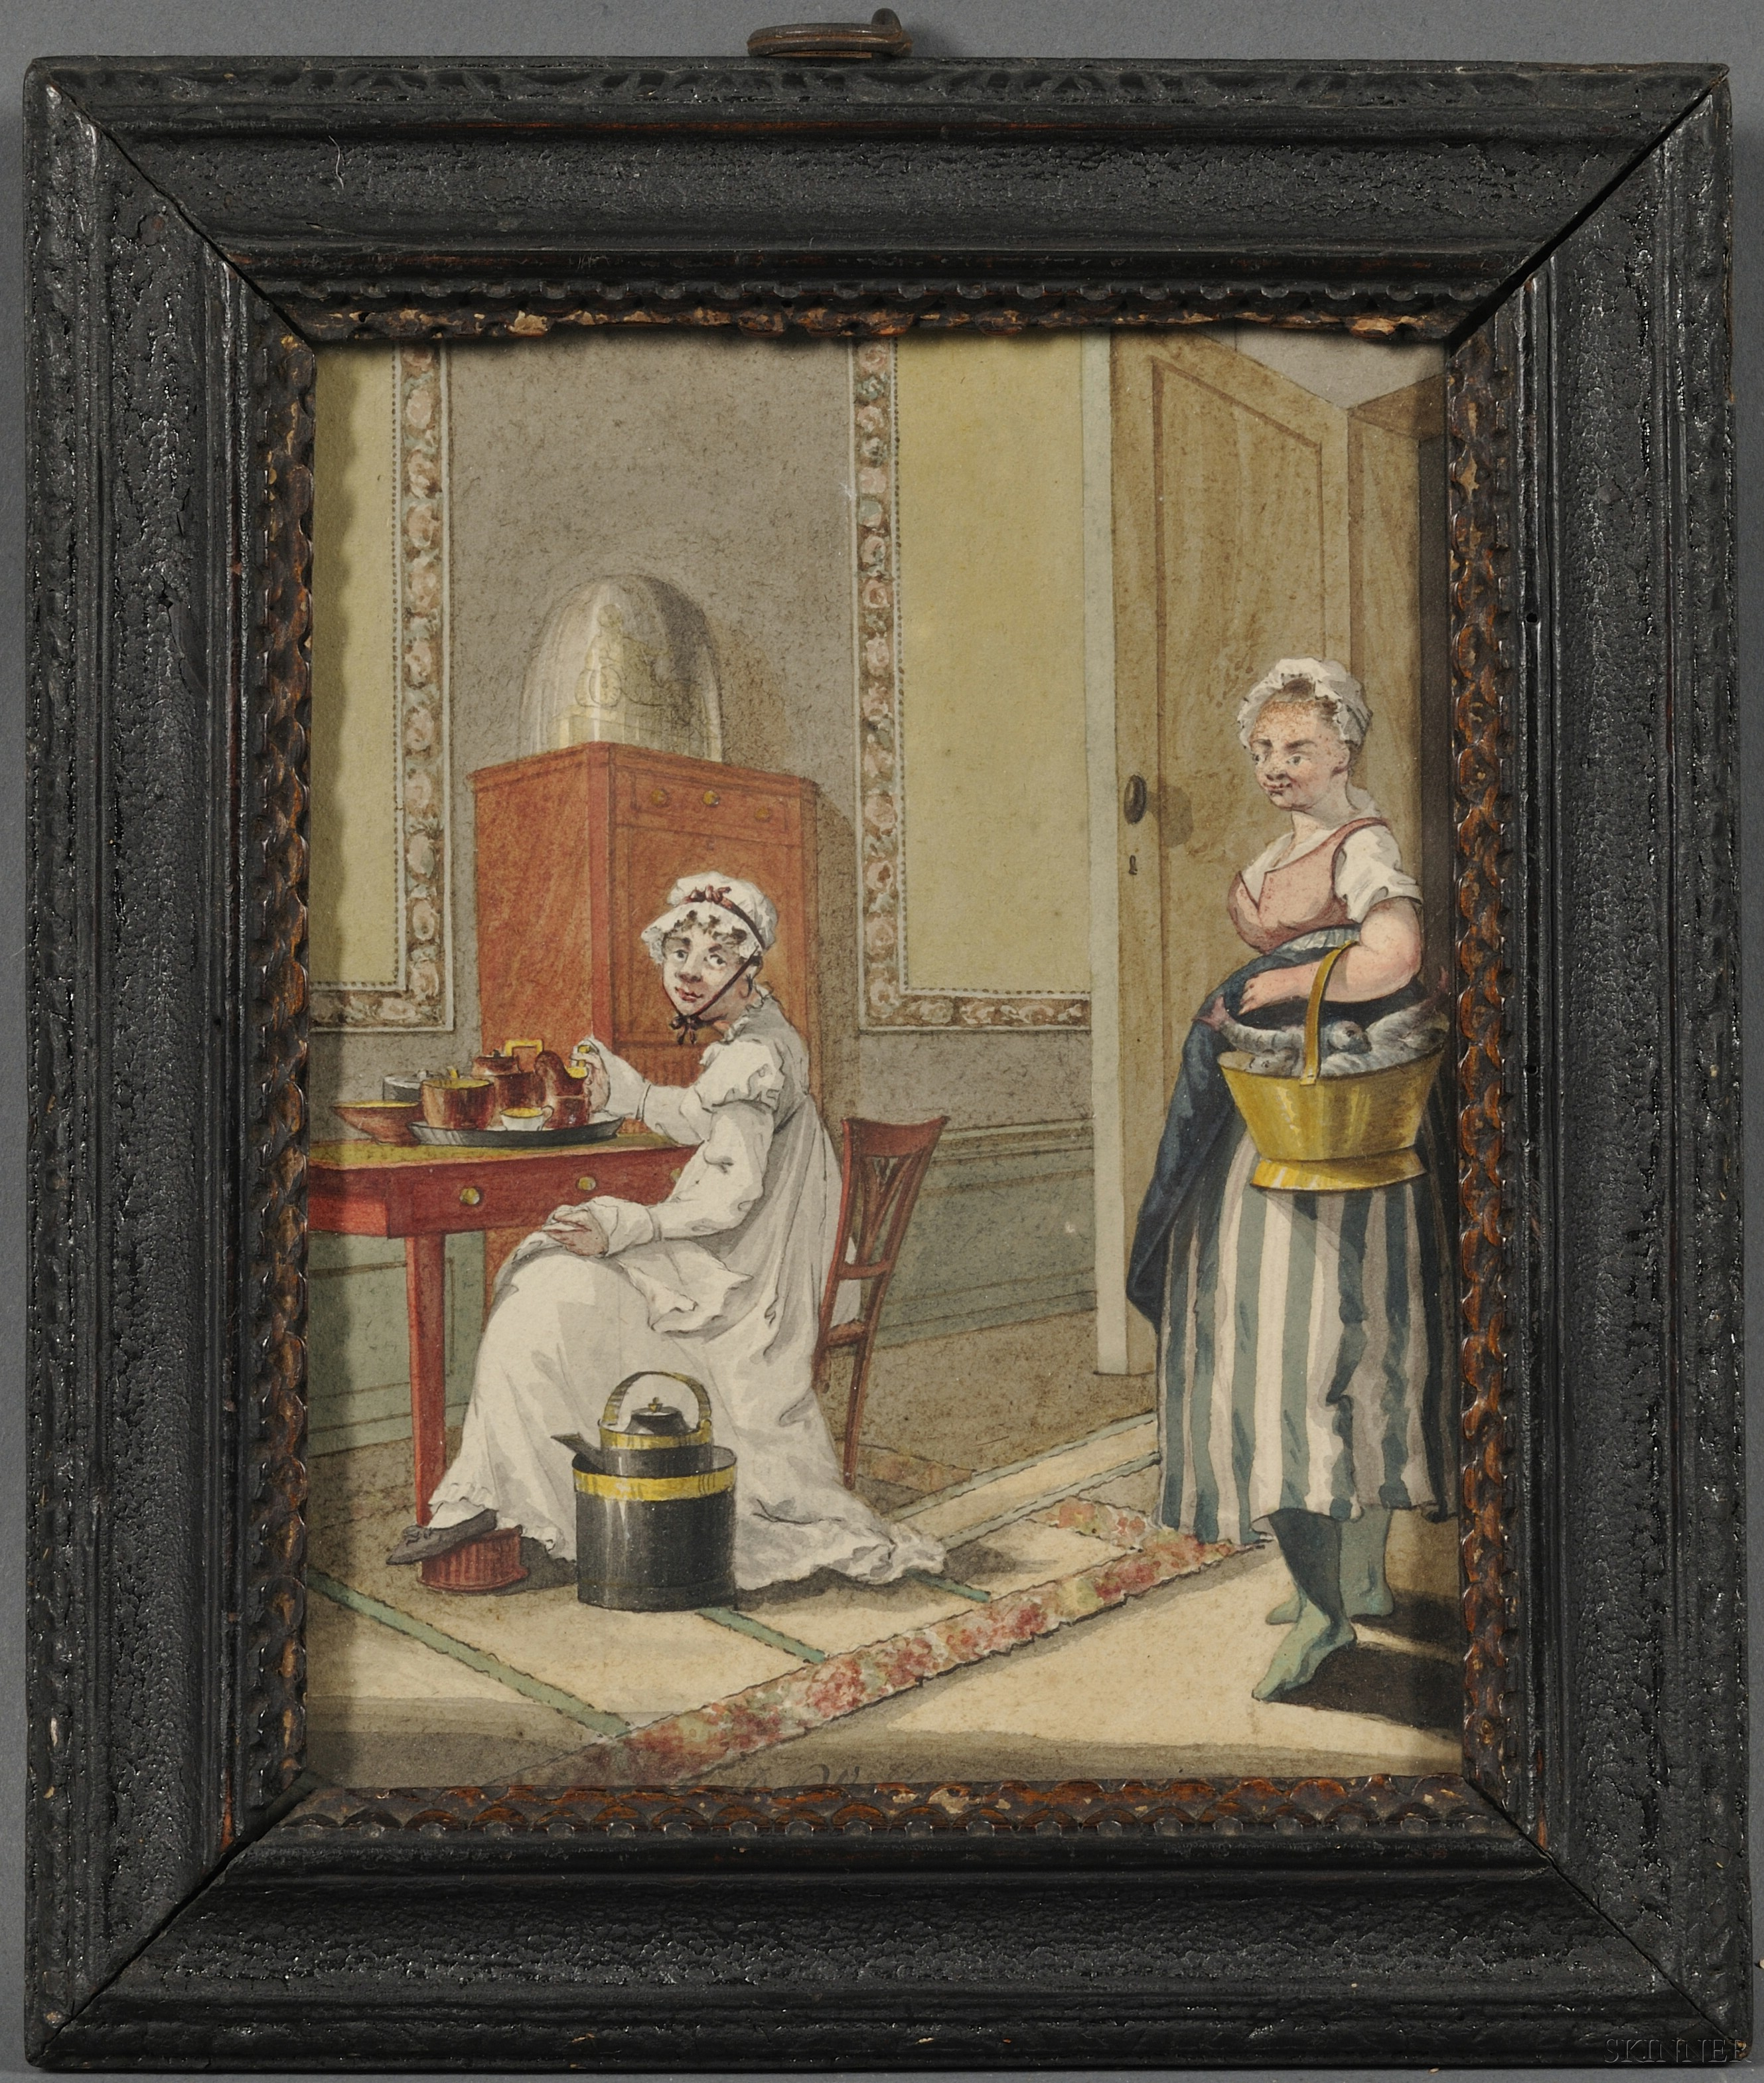 European School, 19th Century      Lady and Kitchen Maid in an Interior